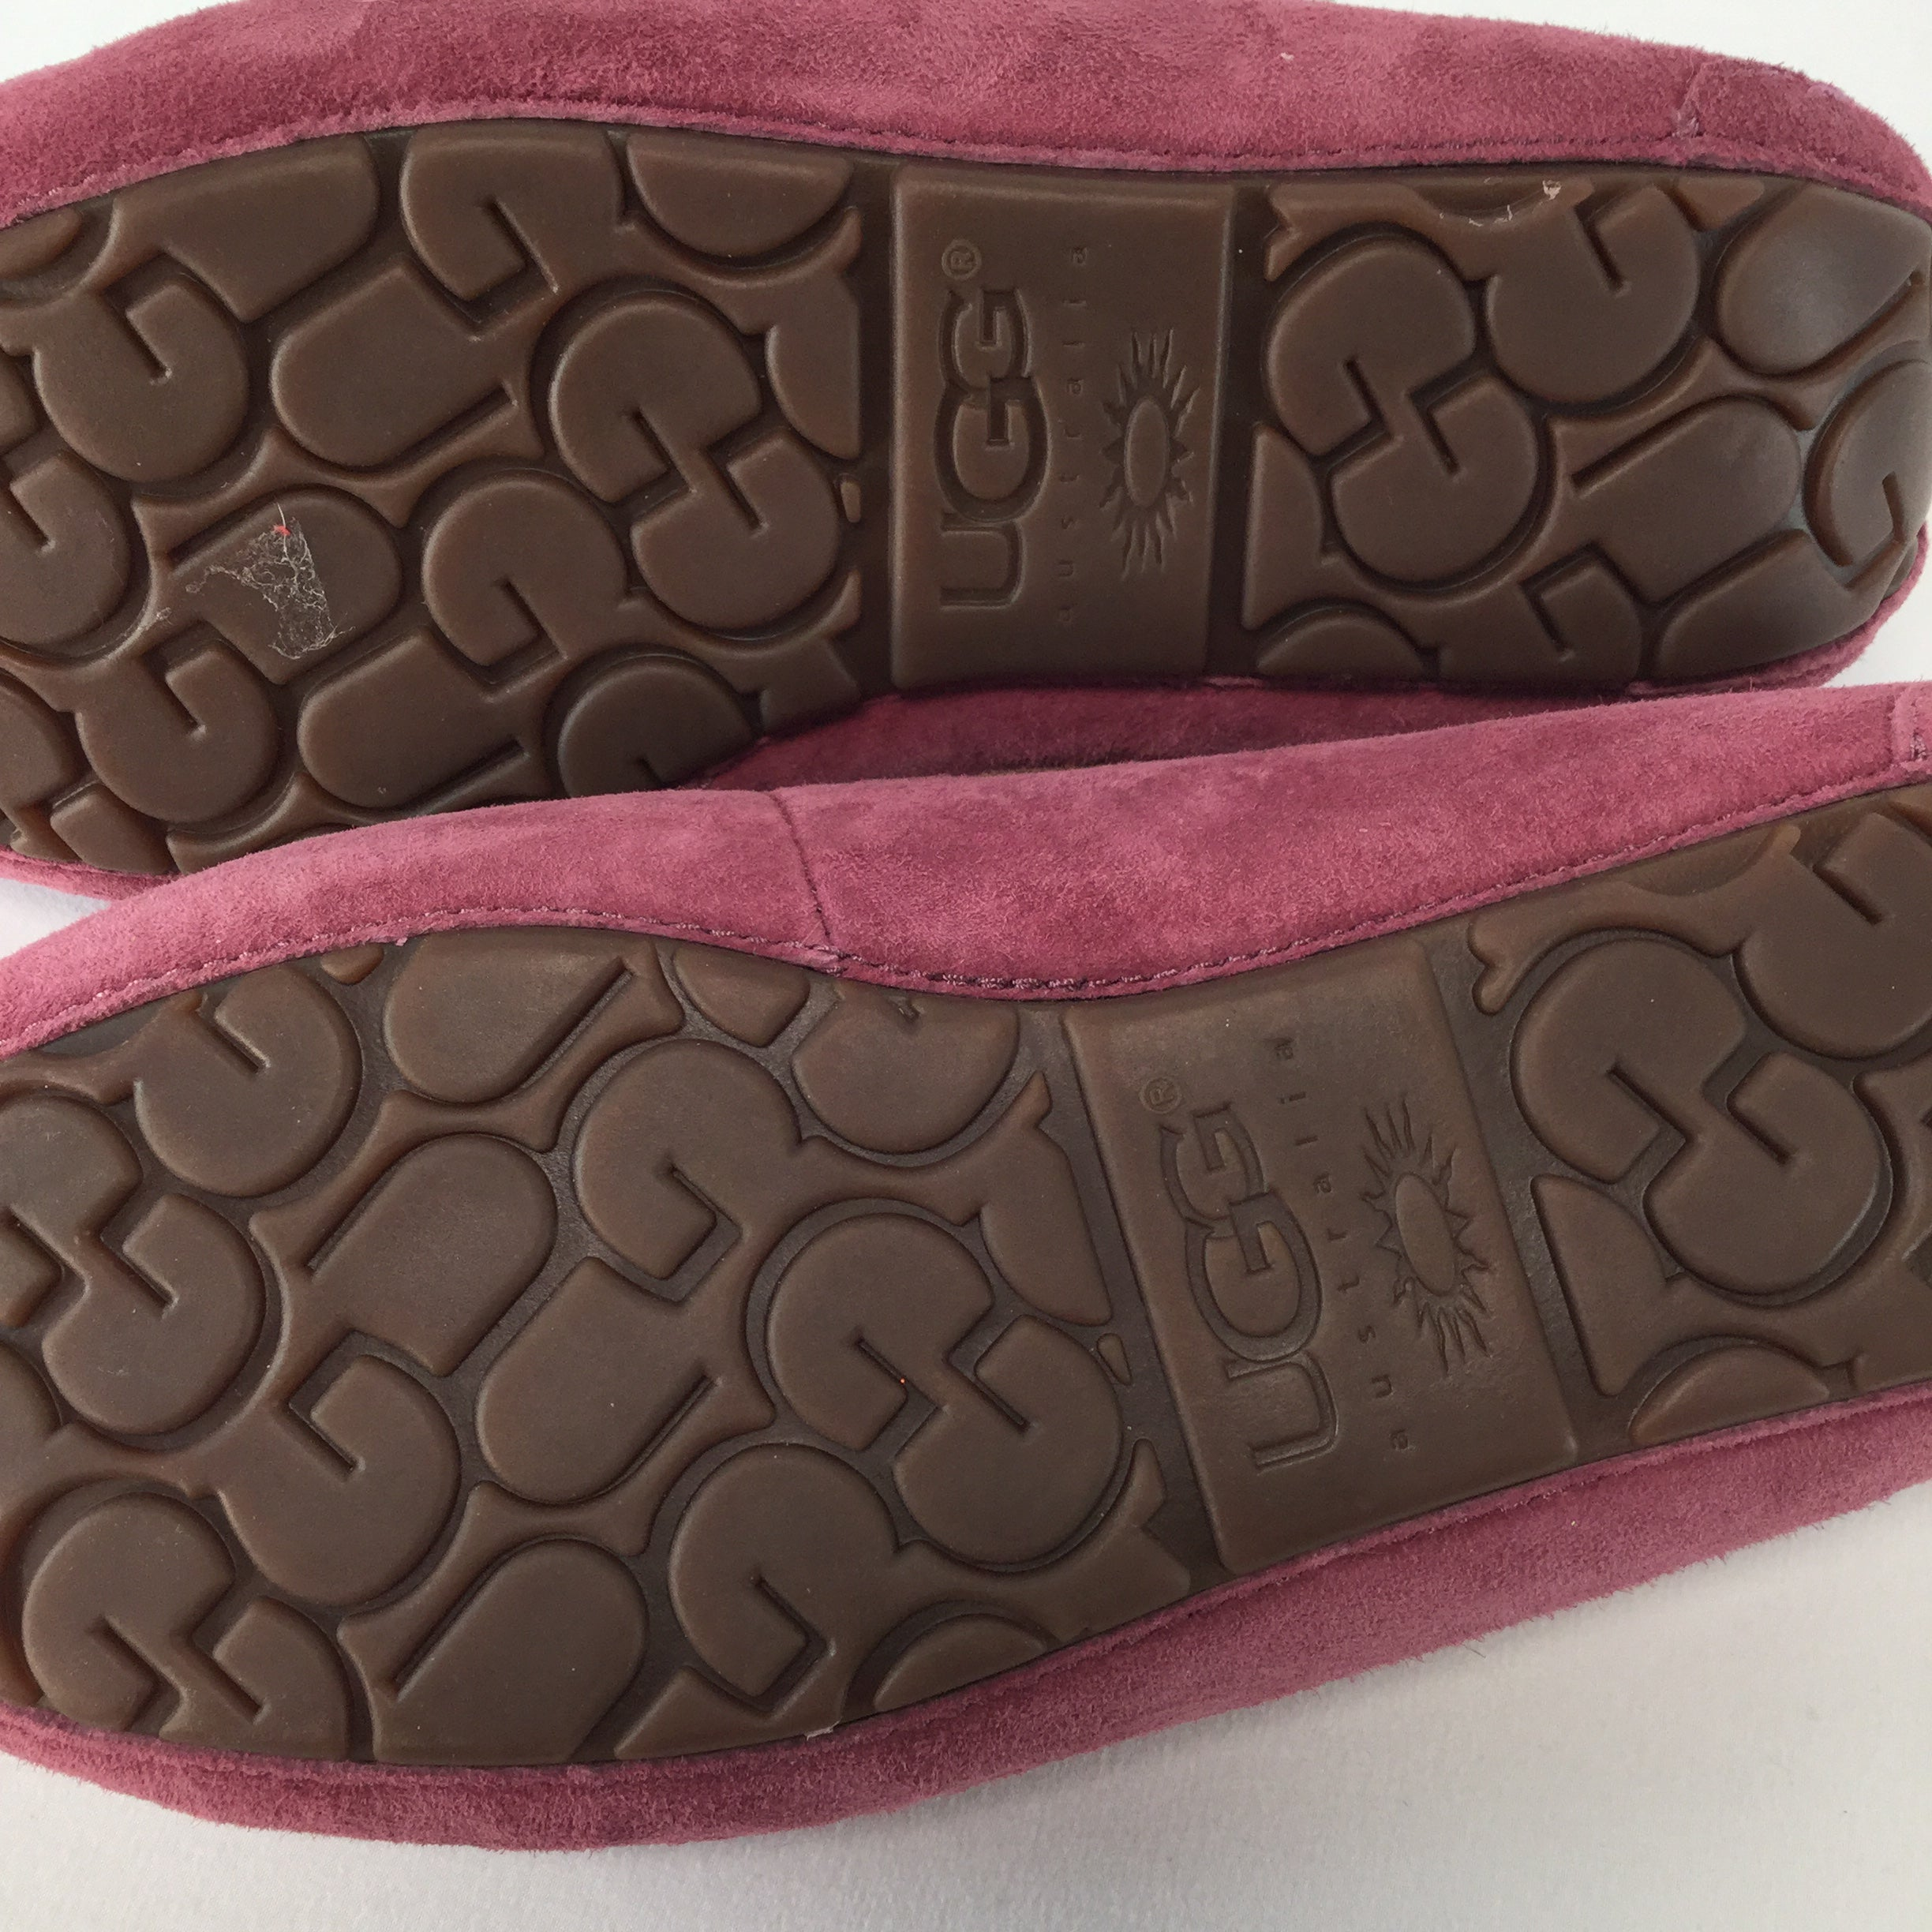 SHOES, - COMFY MOCCASINS PINK IN COLOR, BROWN TIE STRING AND THE FURRY INSIDE WE ALL LOVE.